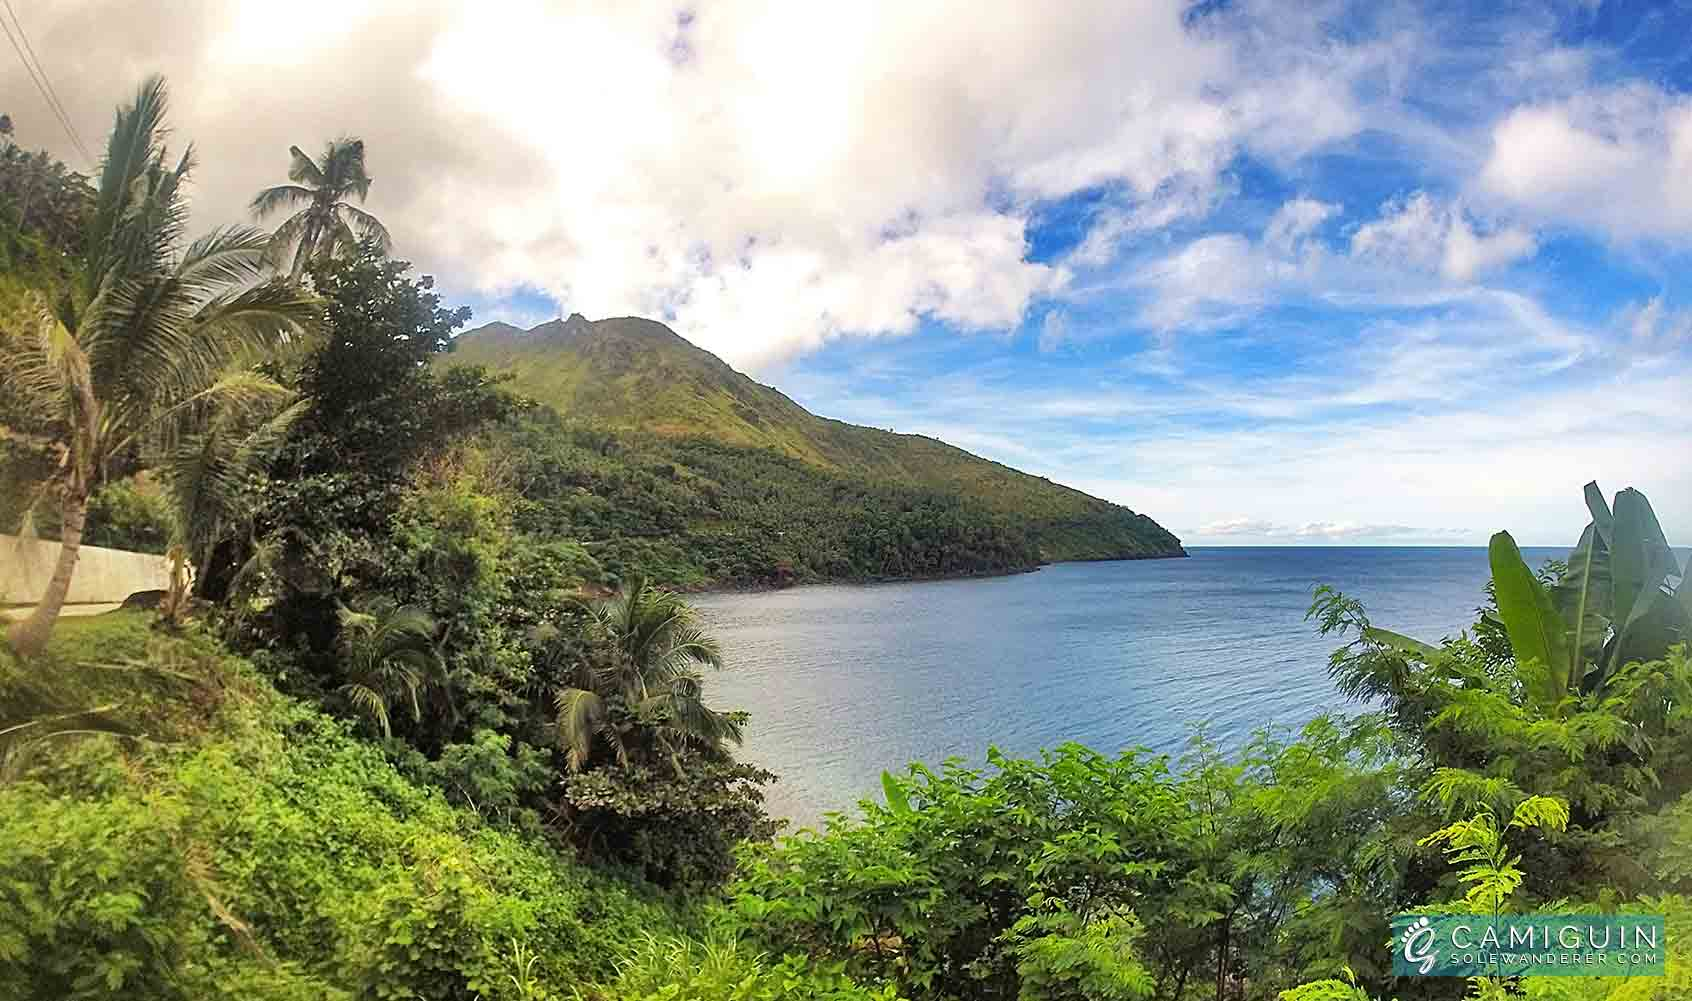 Things to know about Camiguin Island